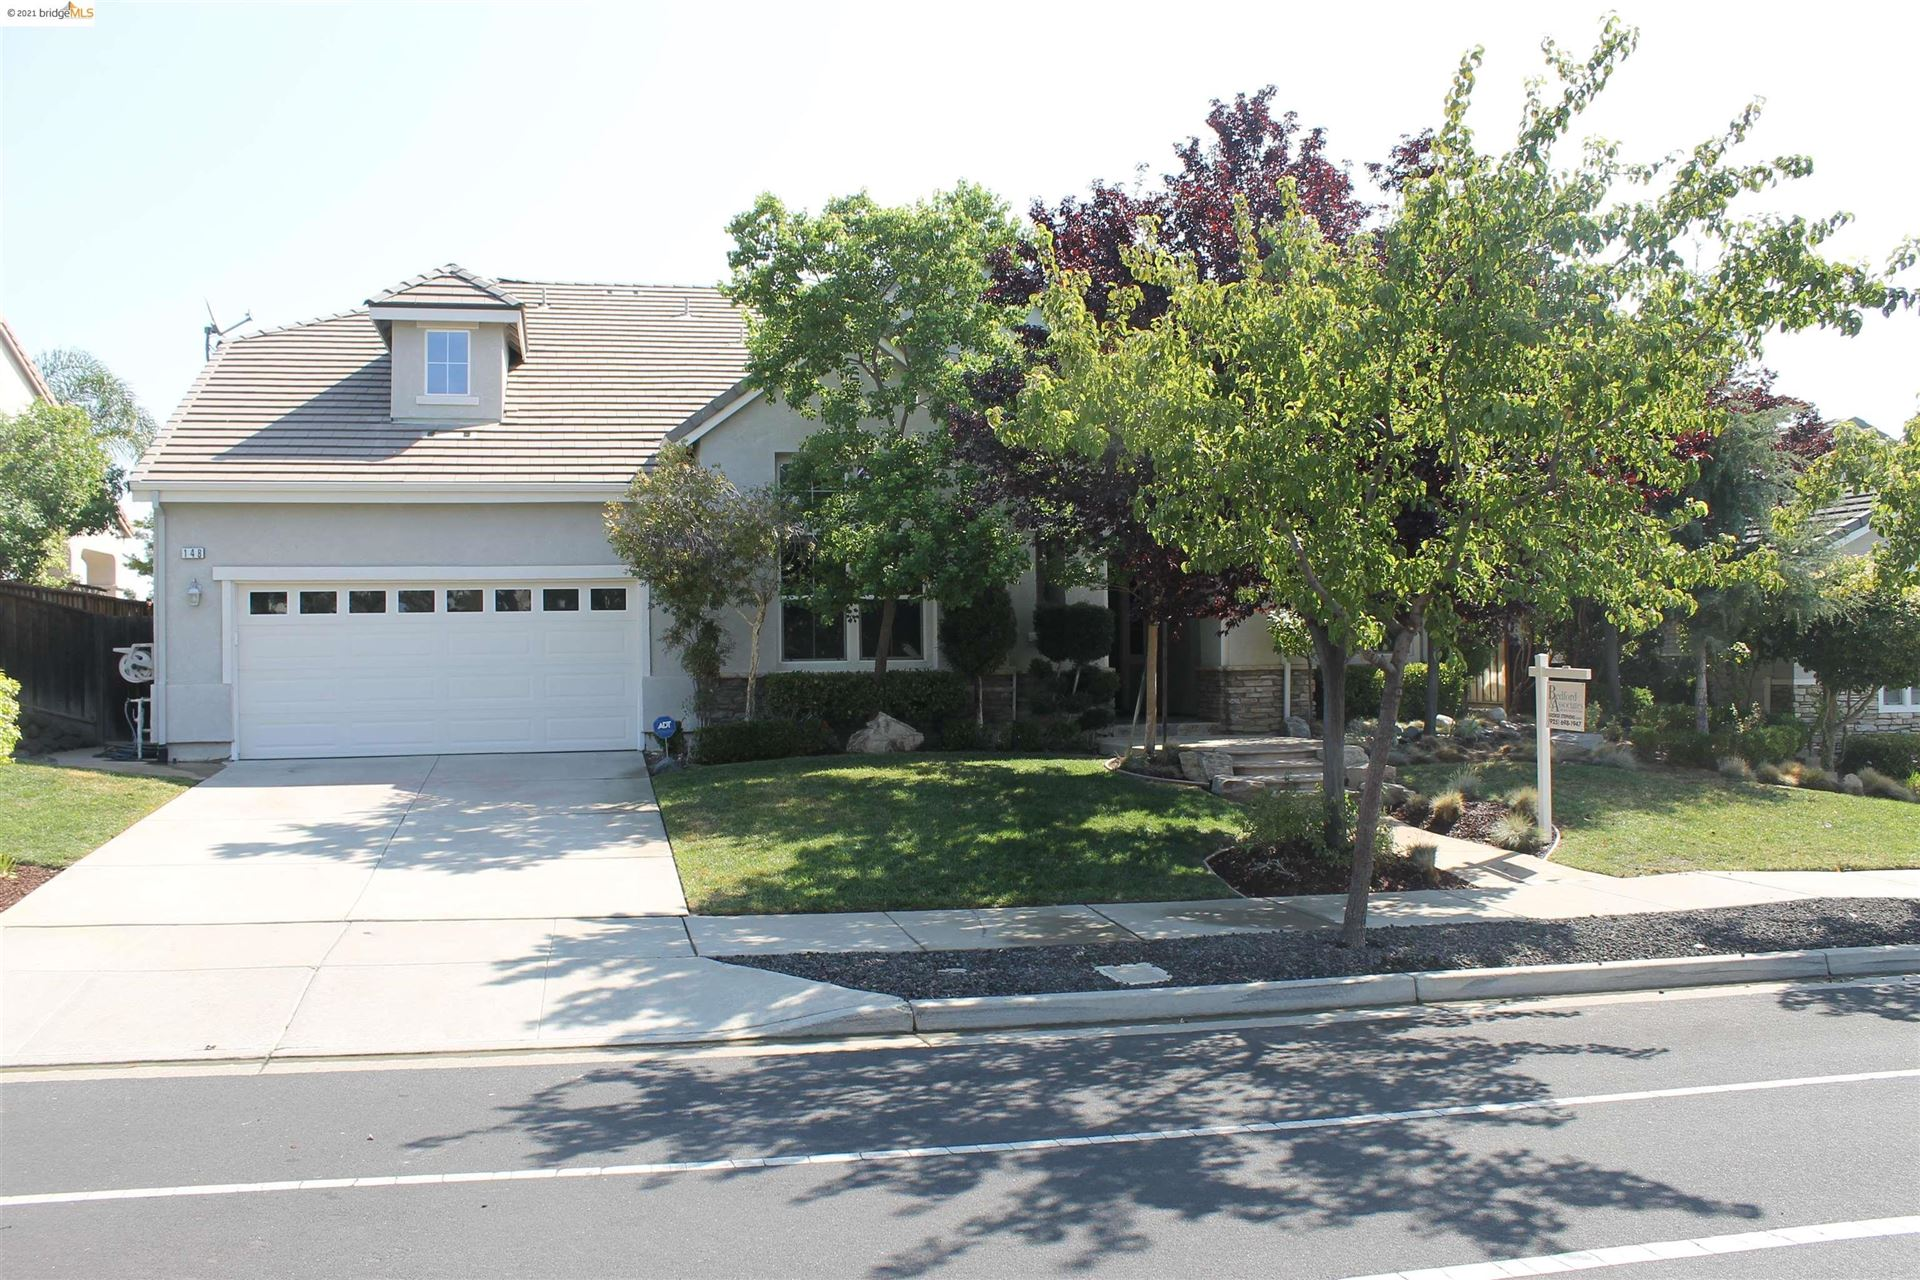 Photo of 148 E Country Club Dr, BRENTWOOD, CA 94513 (MLS # 40964621)